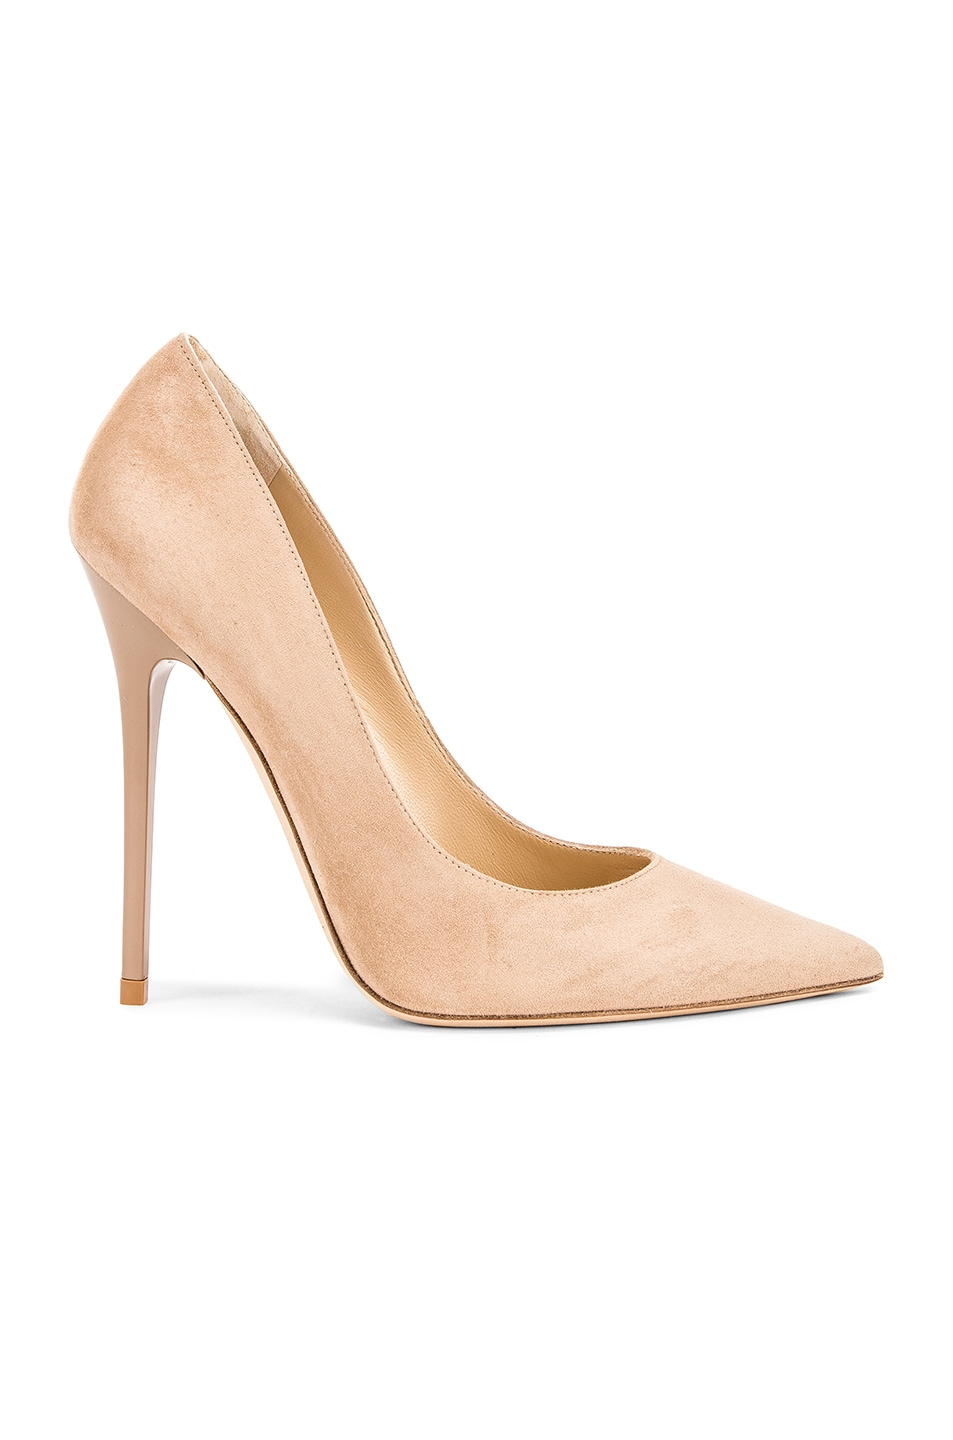 Image 1 of Jimmy Choo Anouk 120 Suede Pumps in Nude